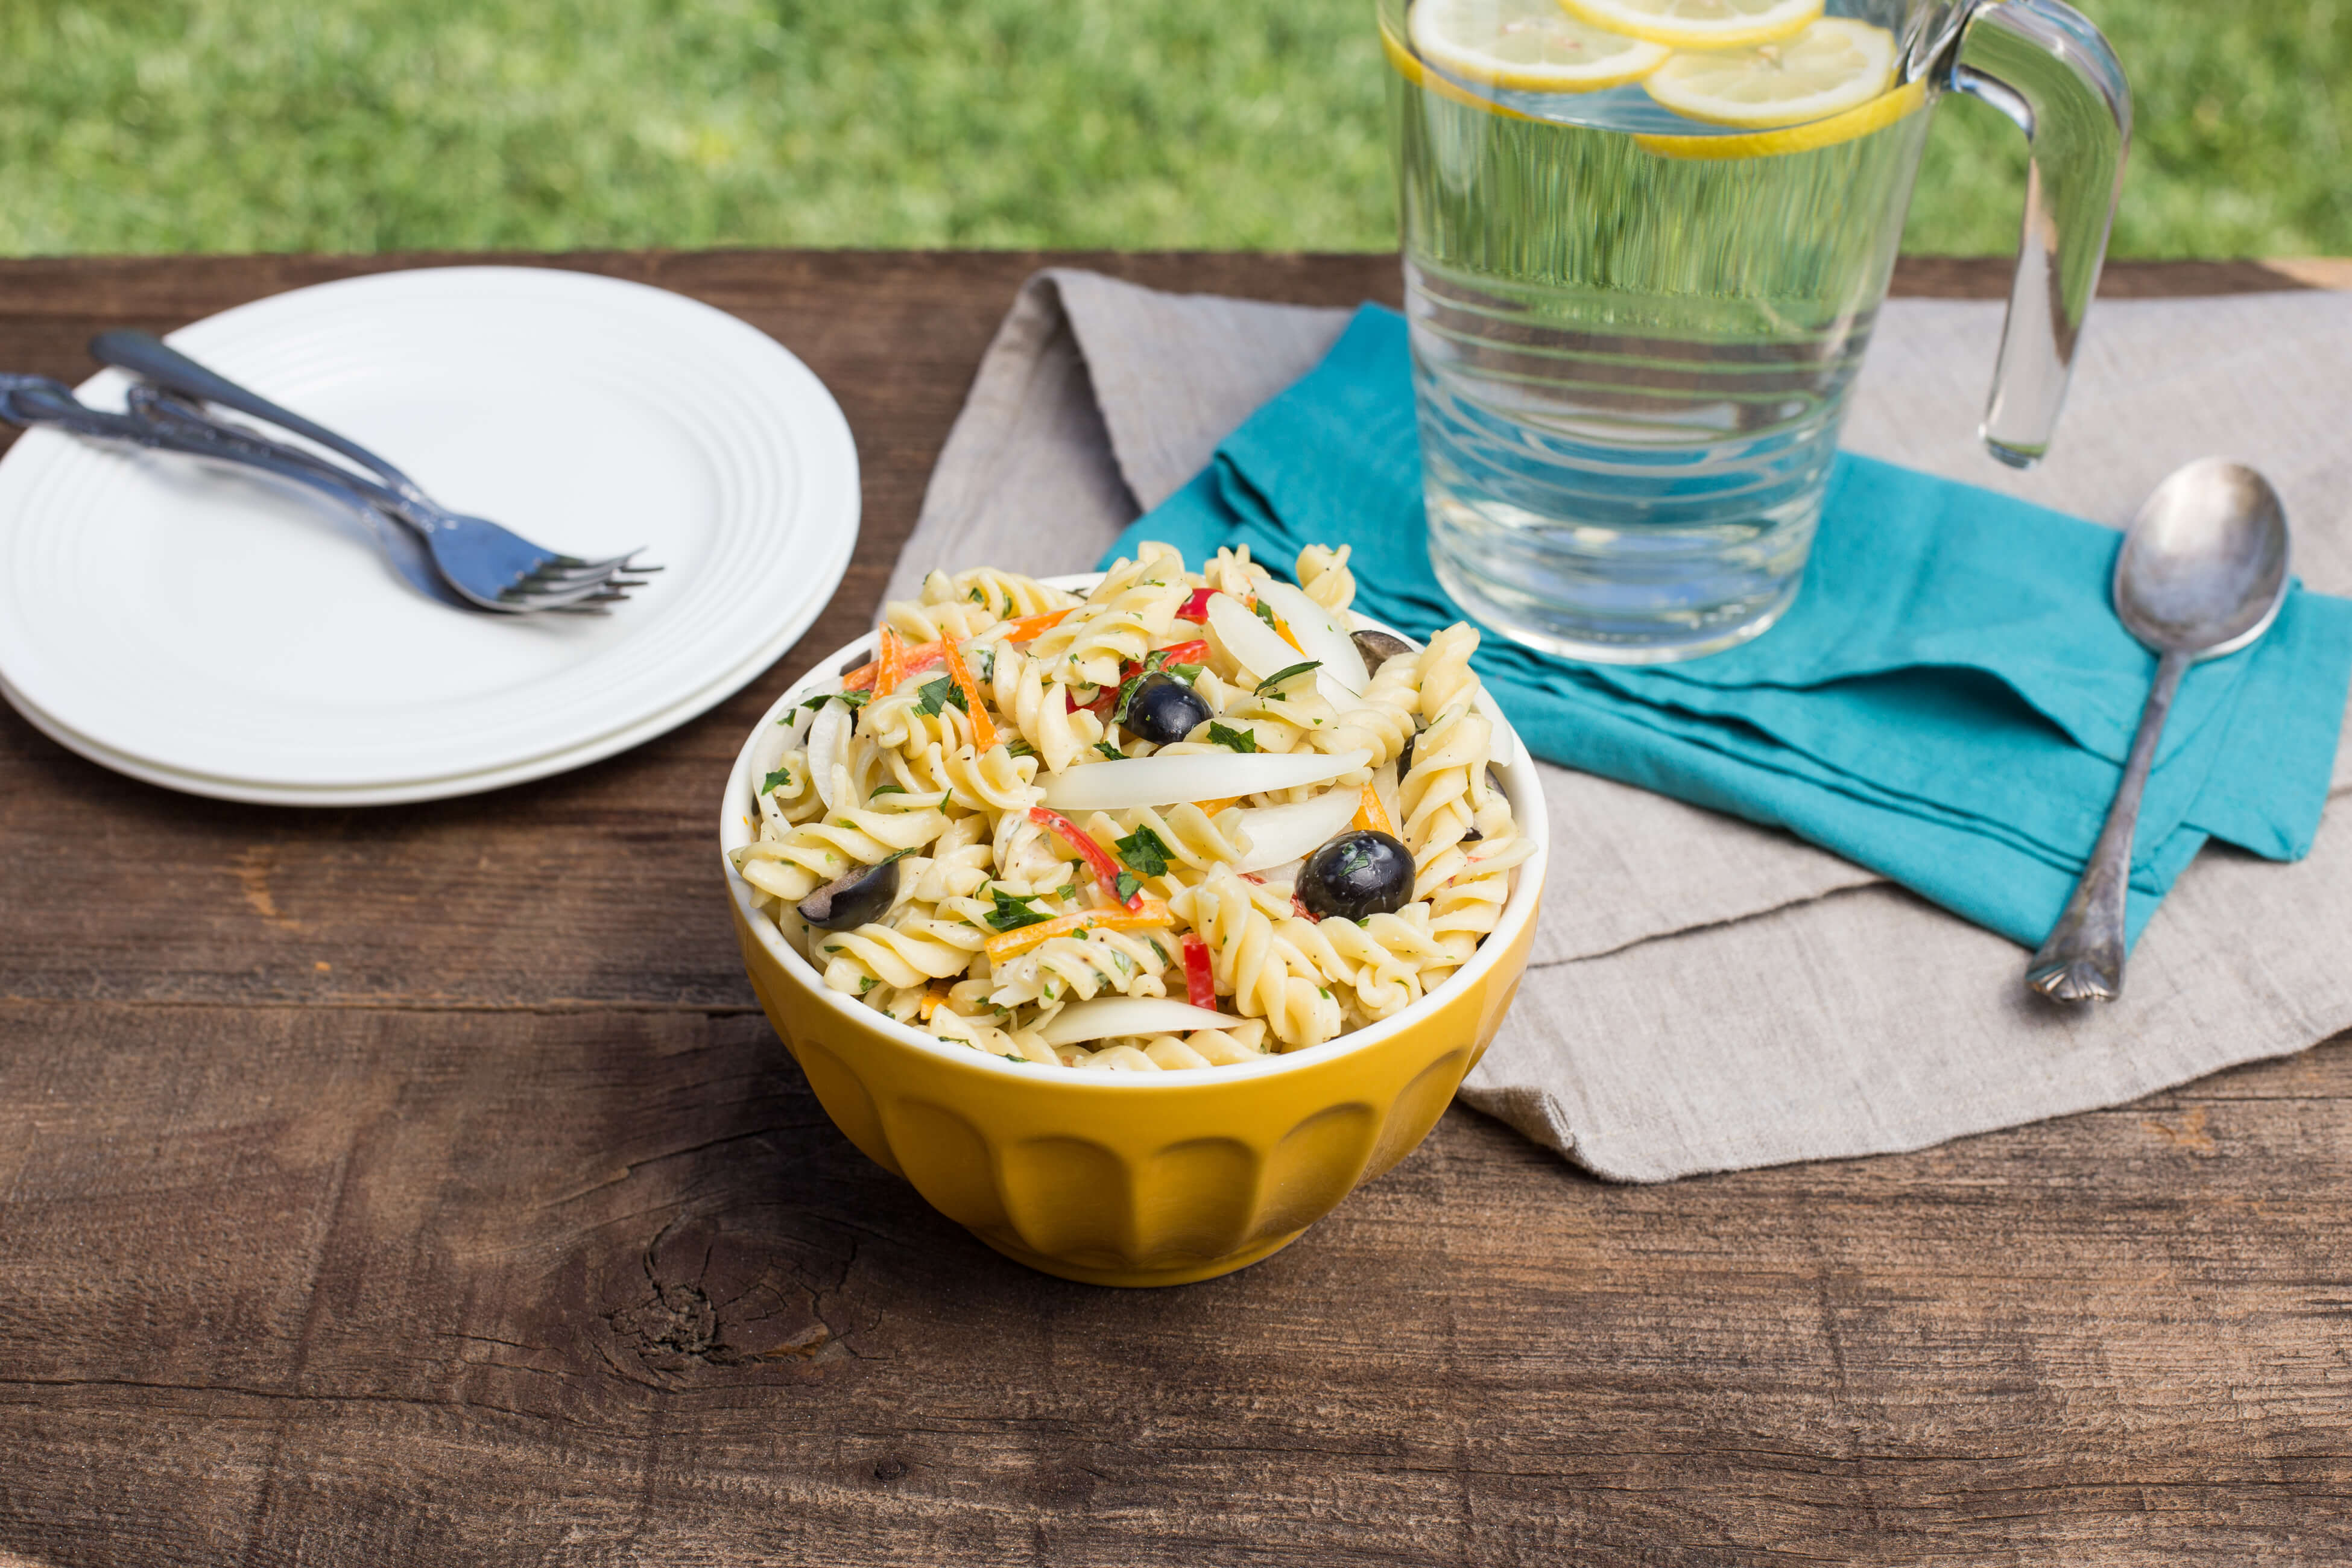 This Sweet Onion Pasta Salad with Creamy Herb Dressing is perfect for a light dinner, side dish or lunch. The touch of sweet onions is perfection.